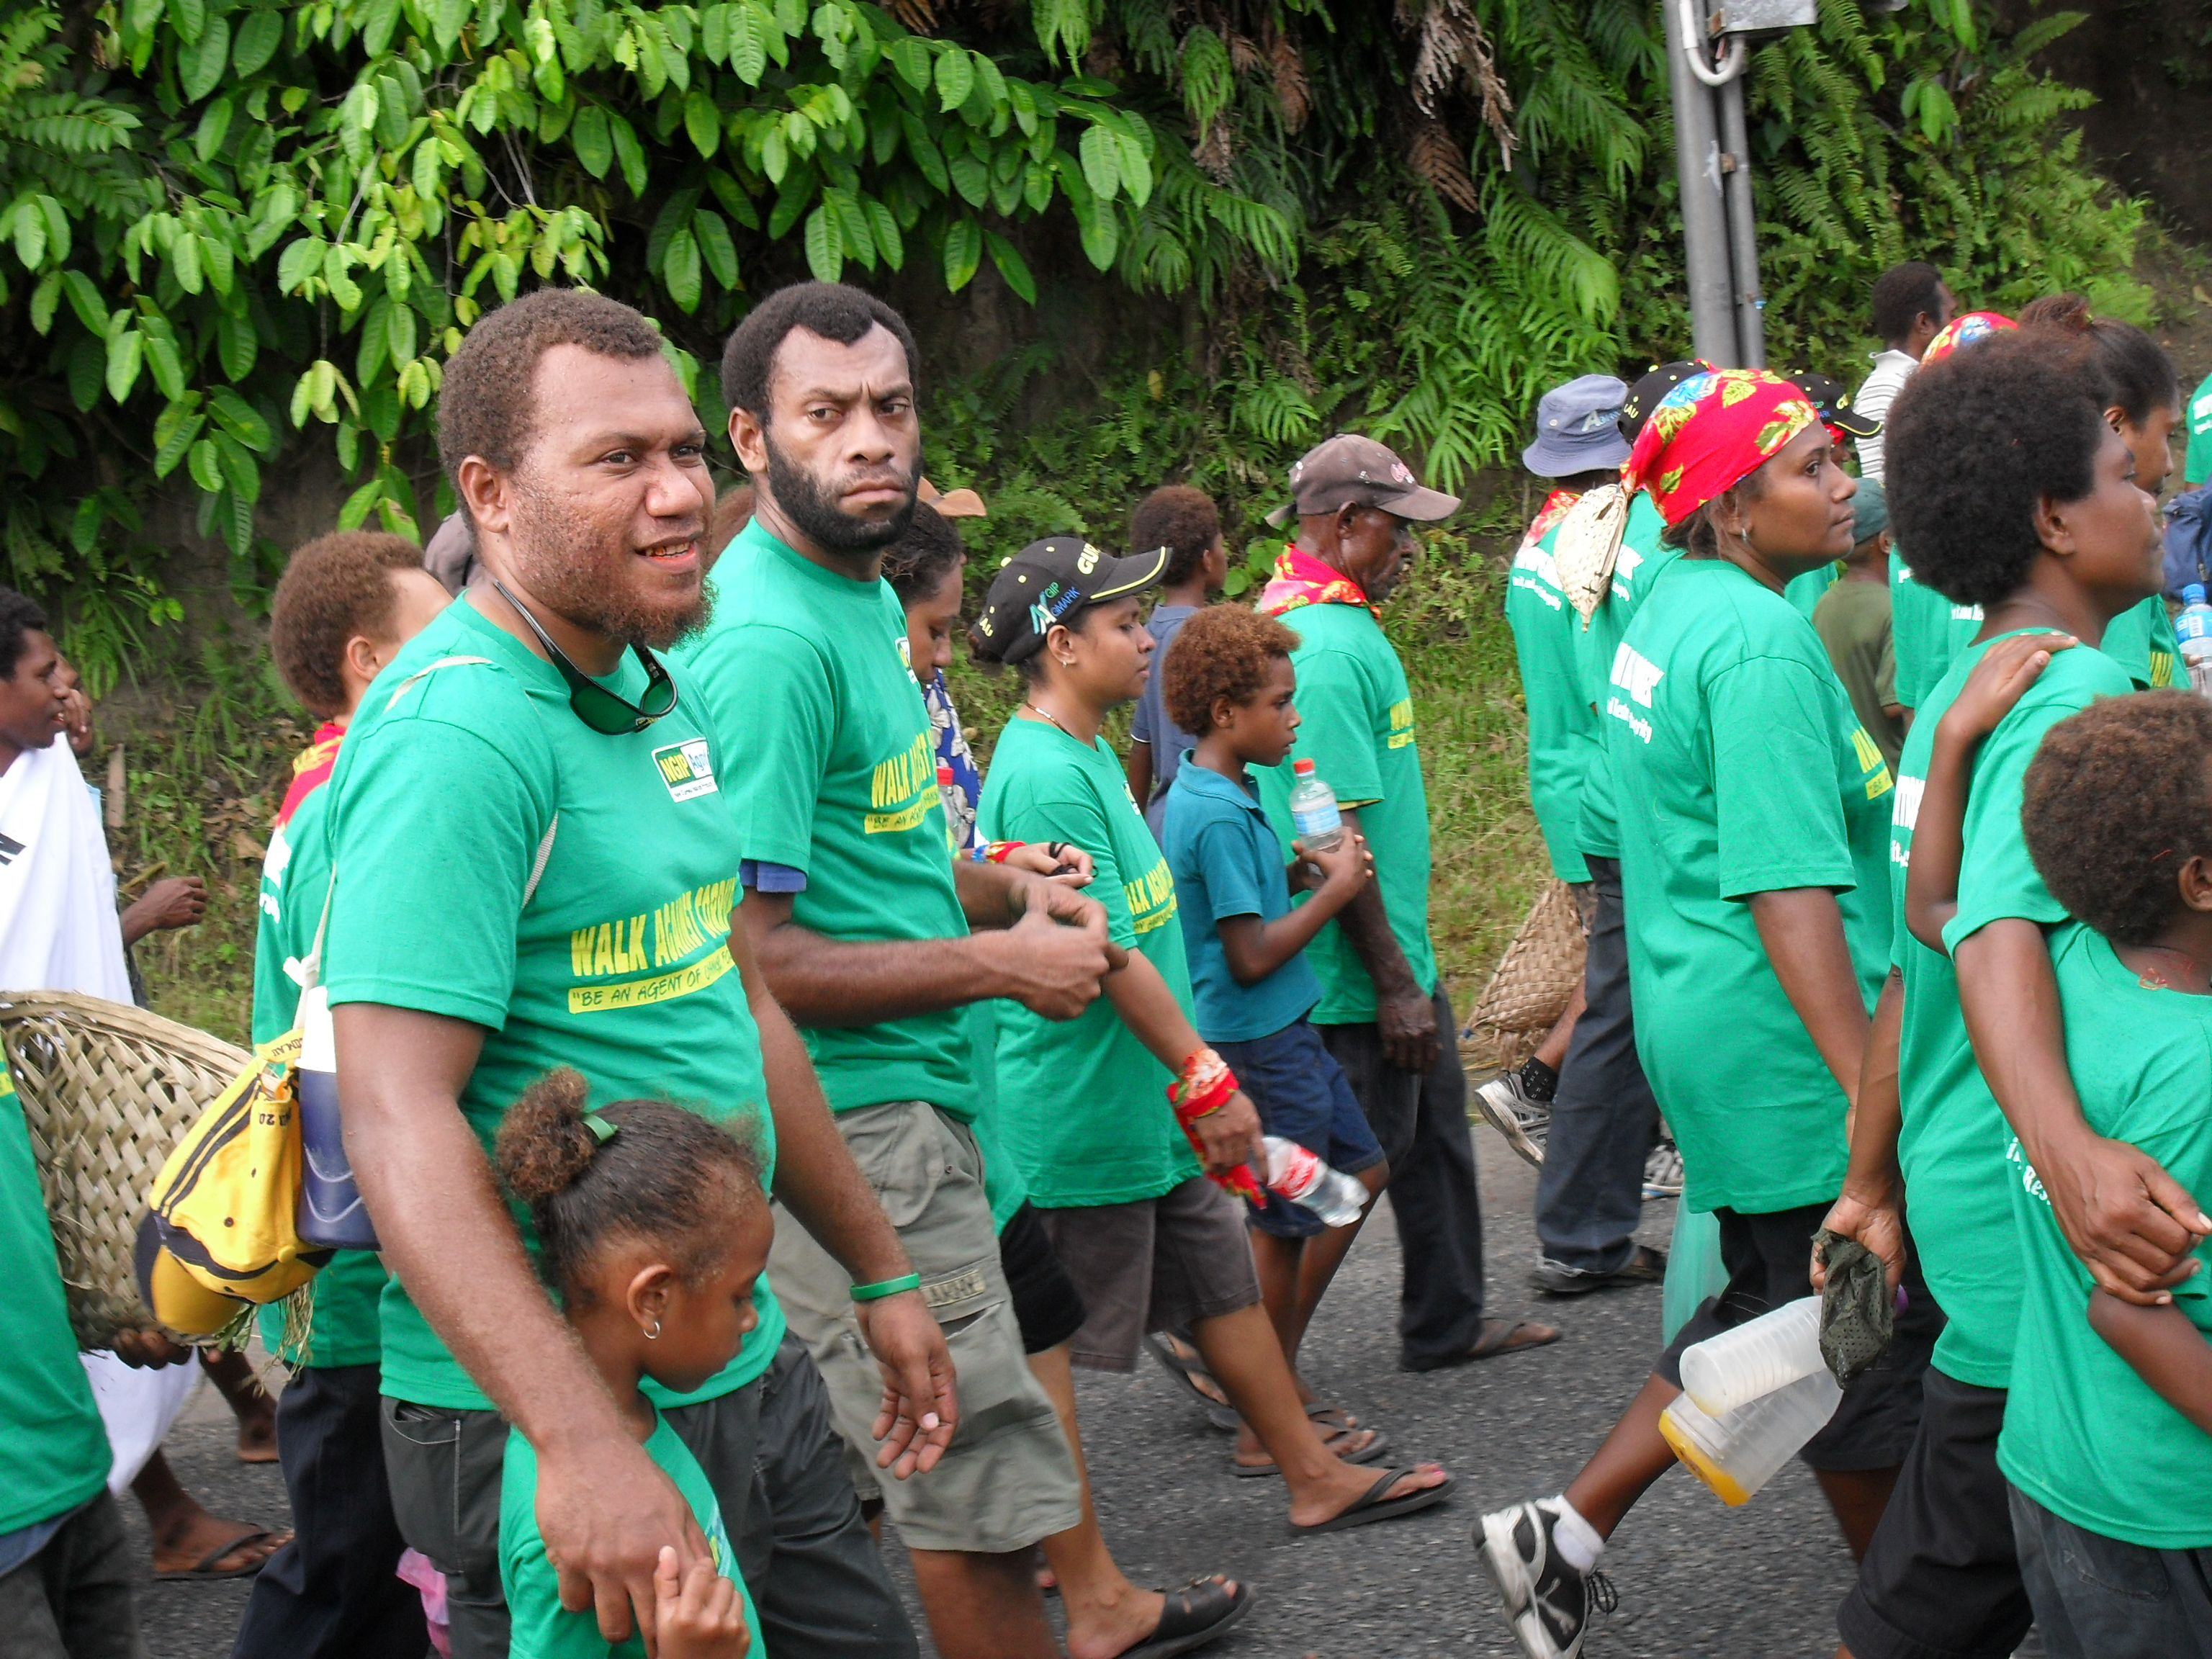 Workers walking against corruption photo